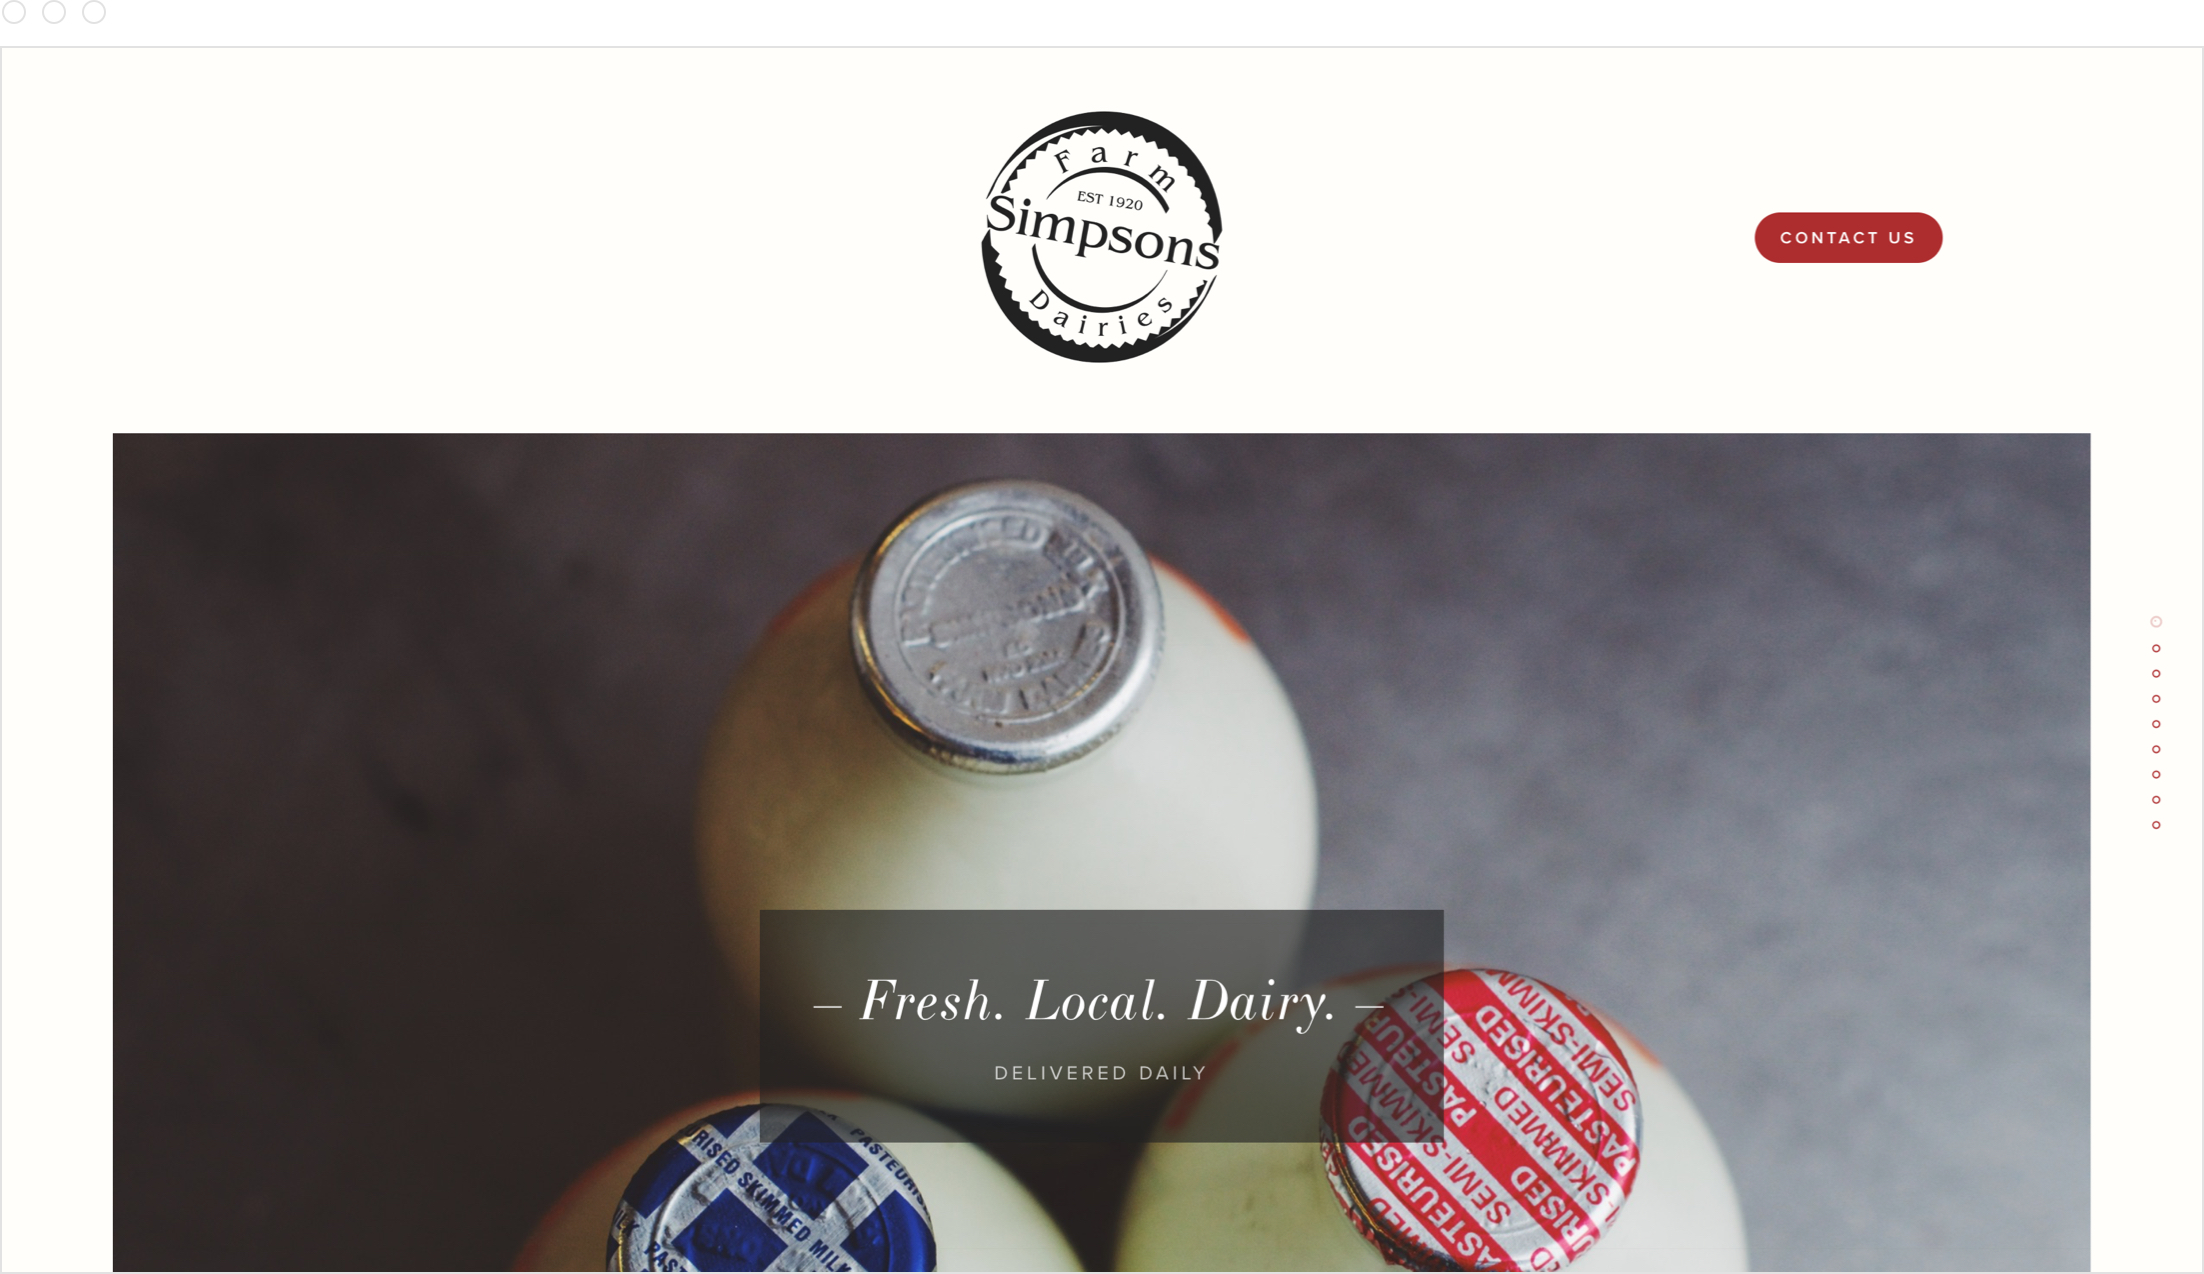 Authentic, rustic home page and website design by Jack Watkins for Lancashire dairy farm, Simpsons Farm Dairies